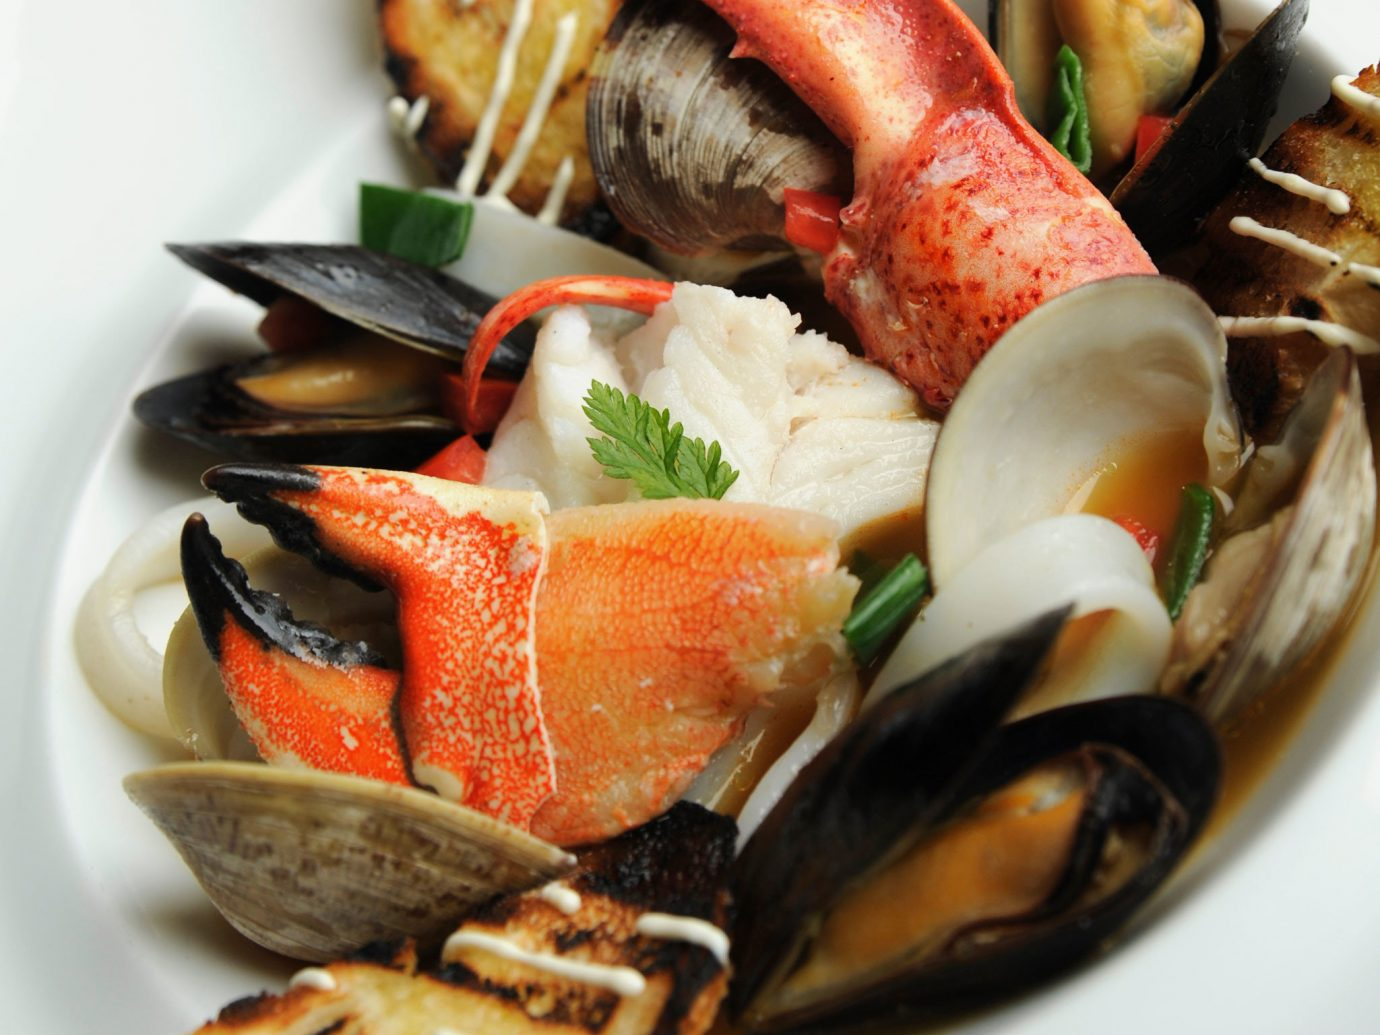 City Dining Eat Hotels Waterfront food dish plate cuisine mussel meal Seafood fish asian food bouillabaisse hors d oeuvre produce sliced containing arranged